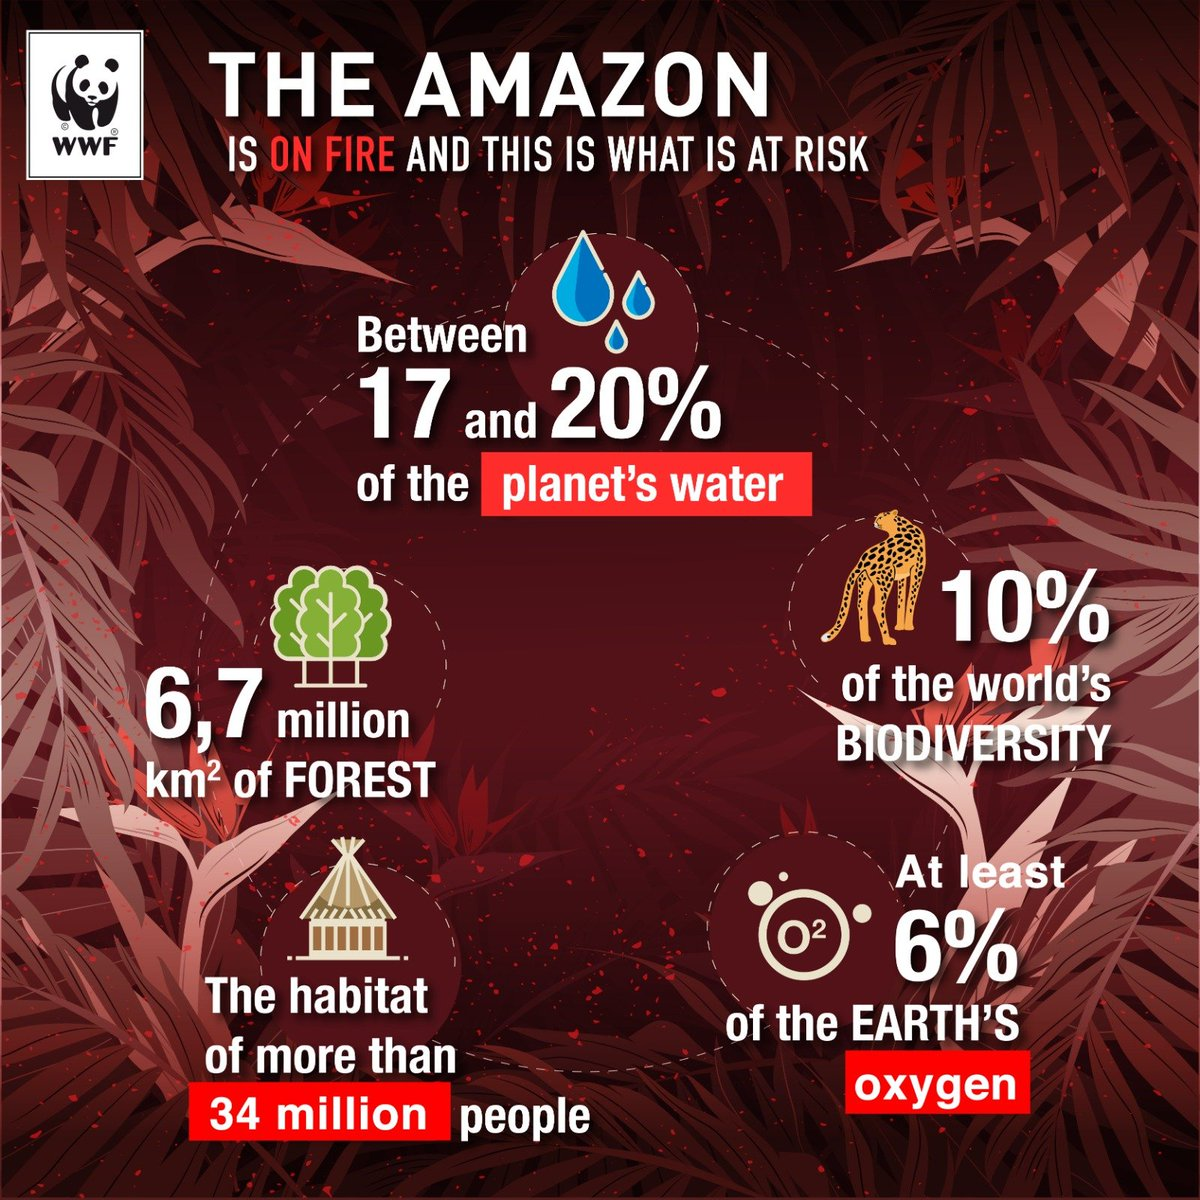 #Amazon needs our help more than ever. We have so much to lose with the Amazon burning & yet not enough action is being taken to stop its destruction. It's crucial that we urgently agree to a #NewDeal for Nature & People to better protect our . #ActForAmazonia <br>http://pic.twitter.com/rBQdHHVRQs